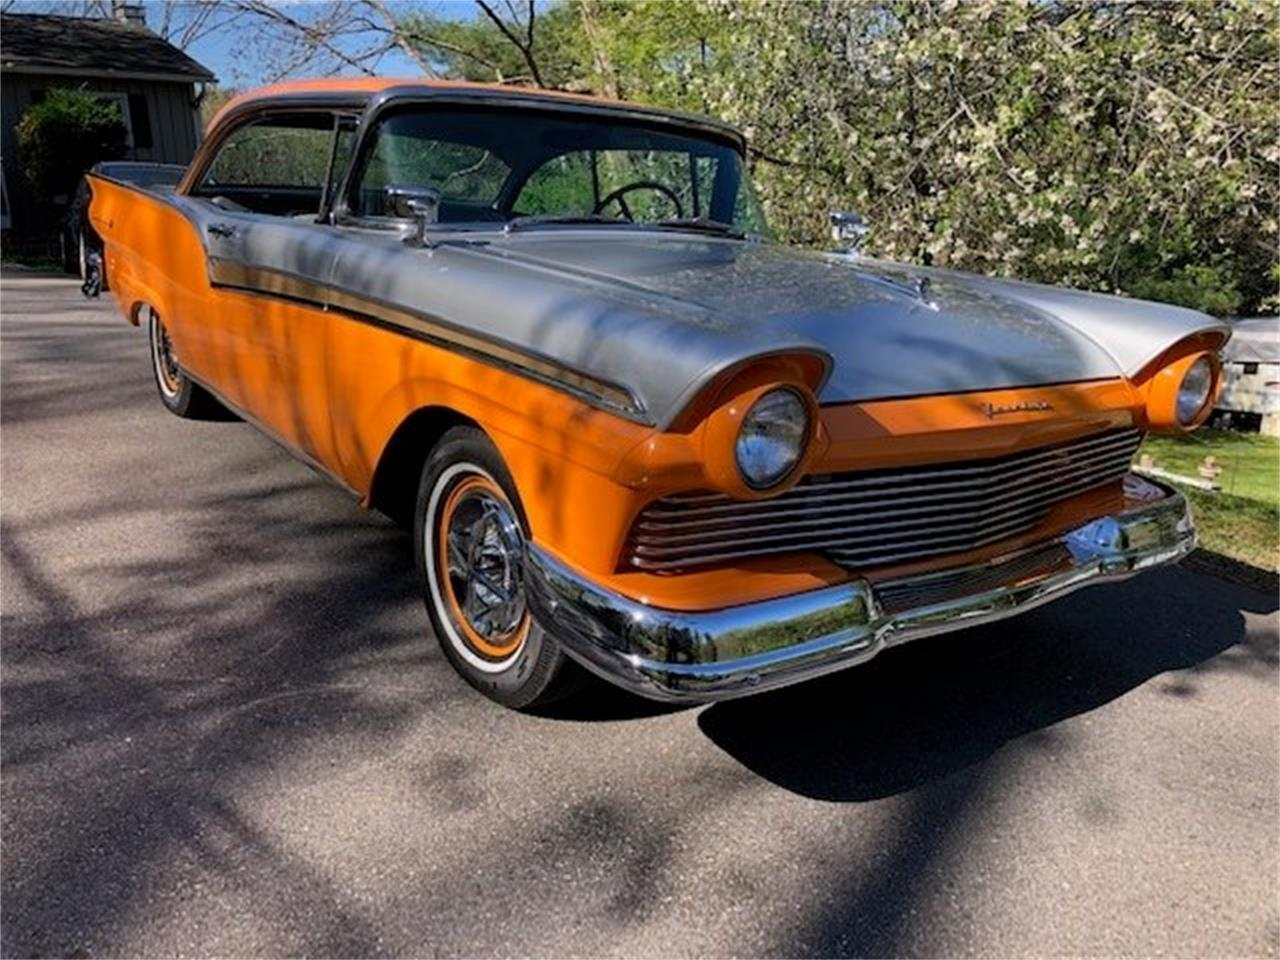 Large Picture of 1957 Fairlane located in North Carolina Auction Vehicle Offered by Tom Mack Auctions - Q1ET